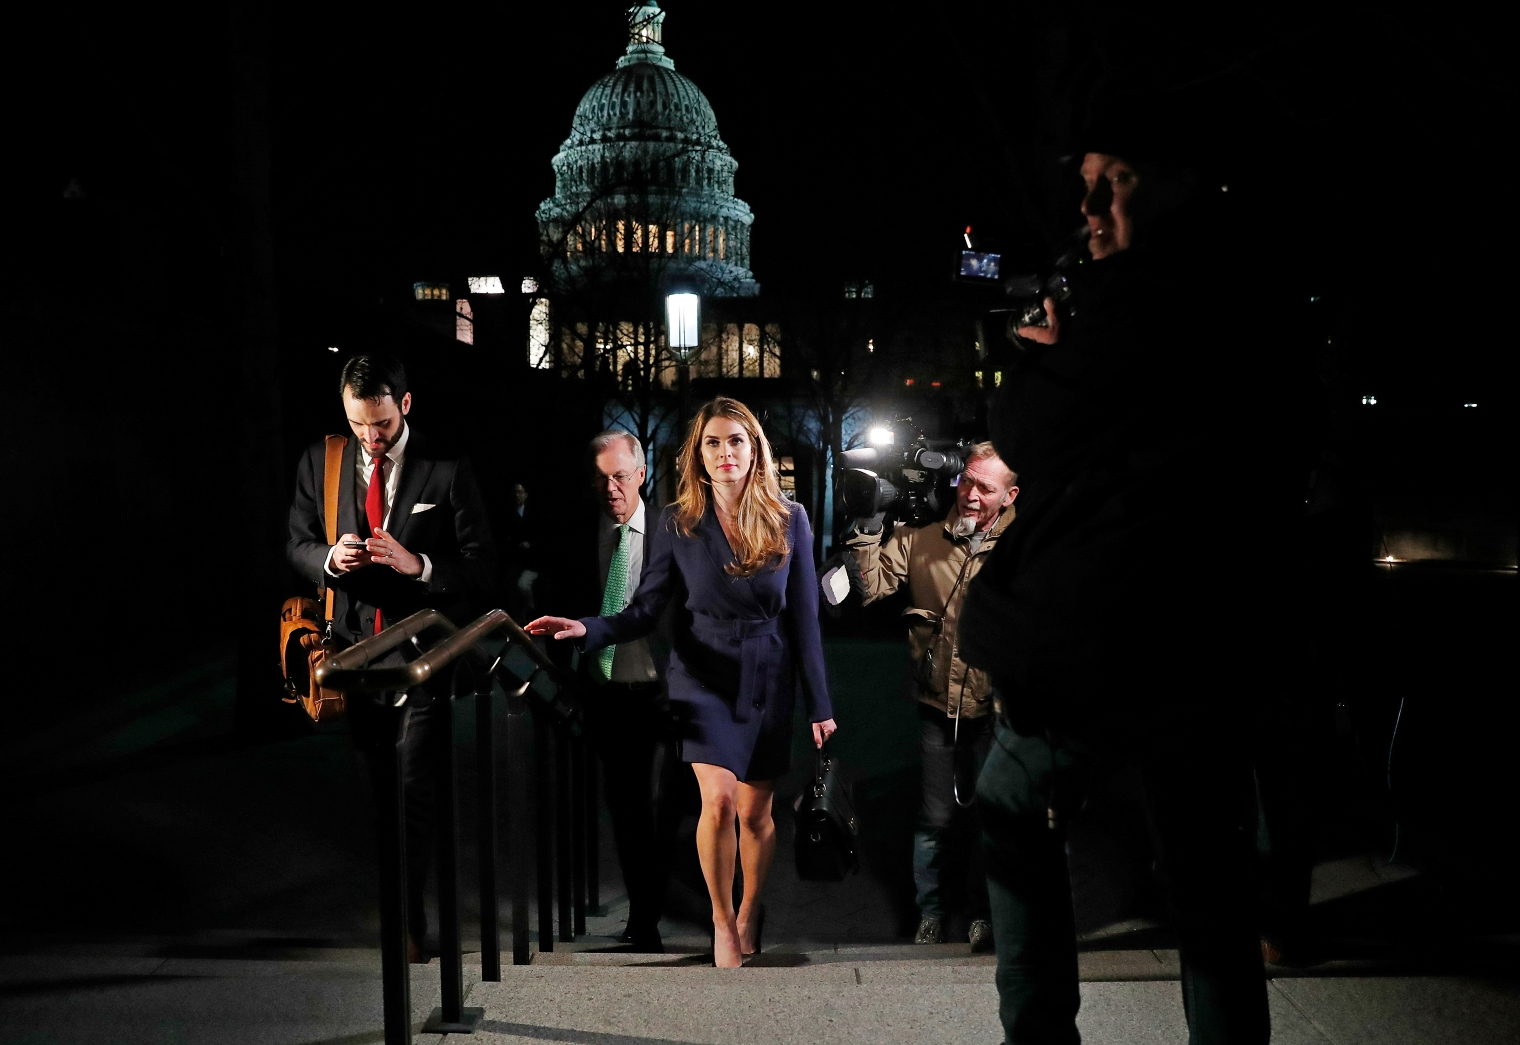 Hope Hicks, the White House communications director, leaves the Capitol on Feb. 27